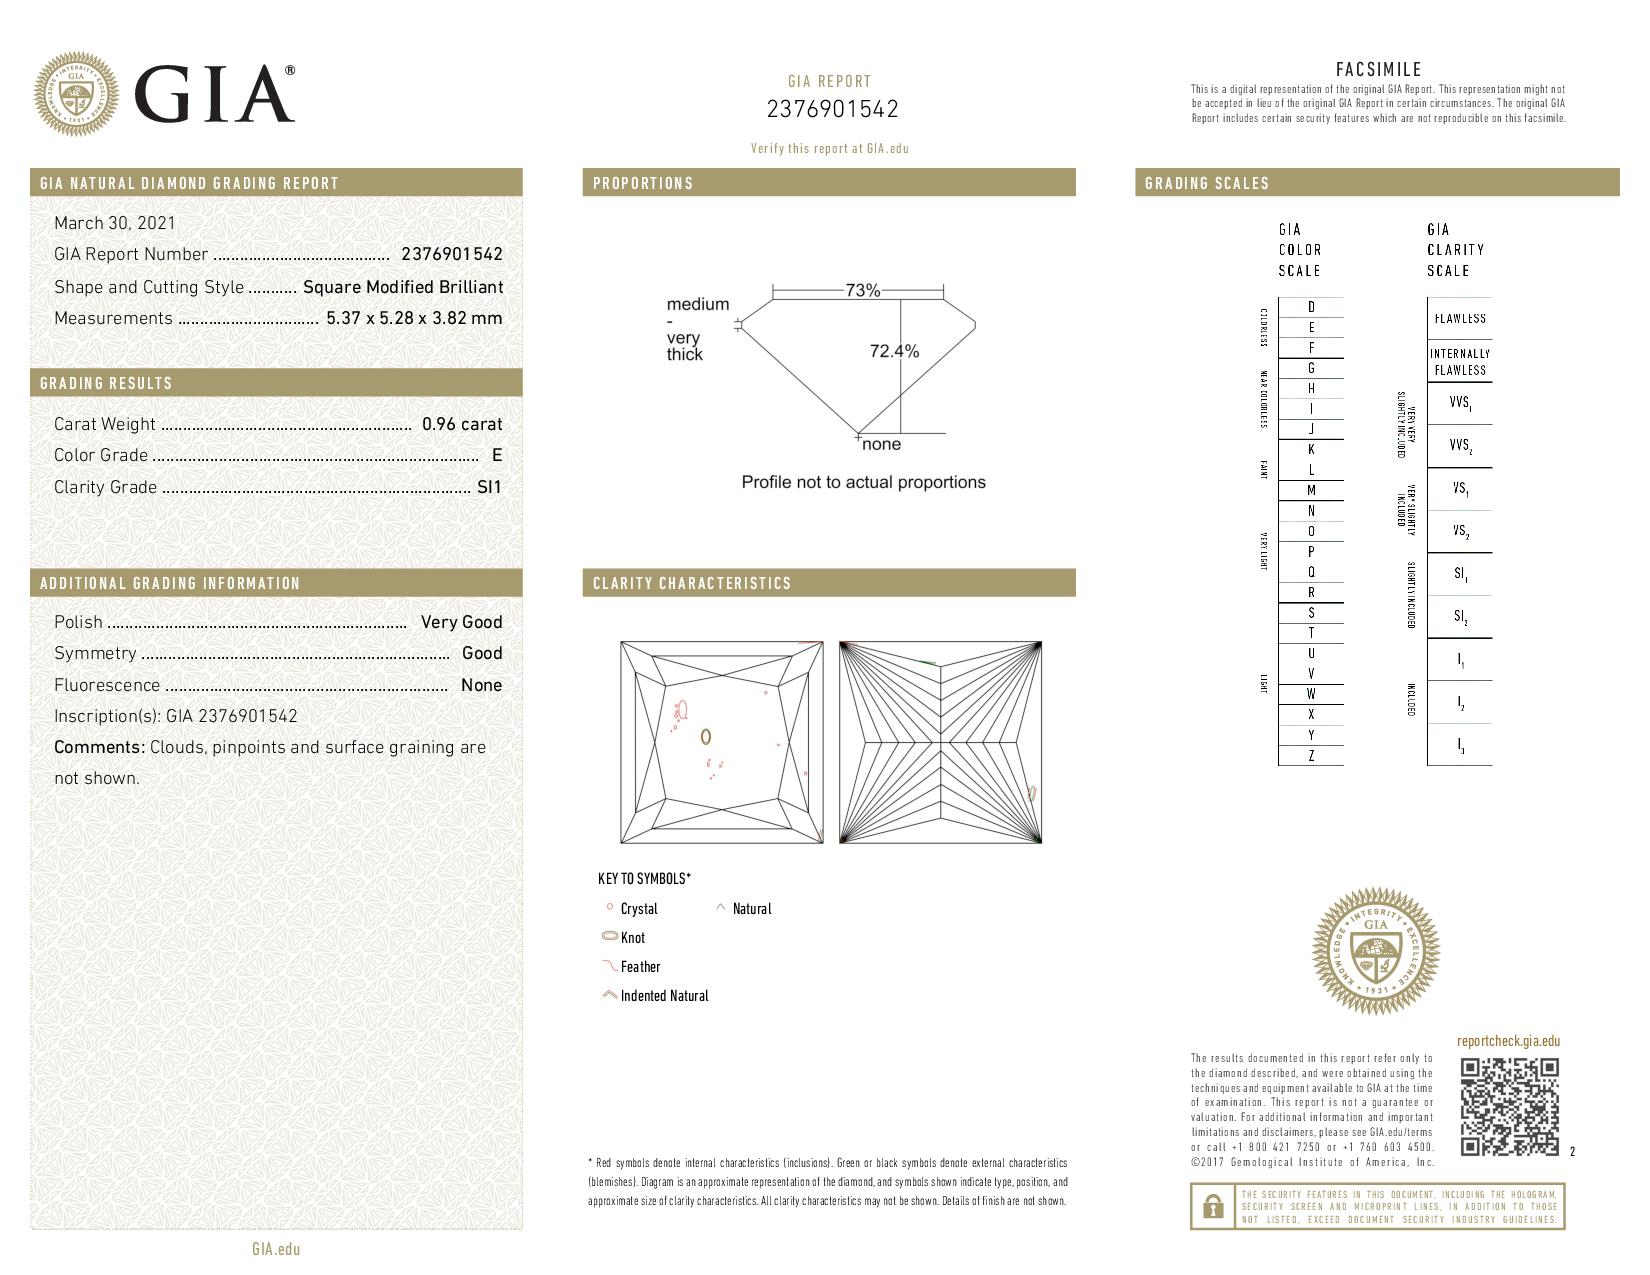 This is a 0.96 carat princess shape, E color, SI1 clarity natural diamond accompanied by a GIA grading report.